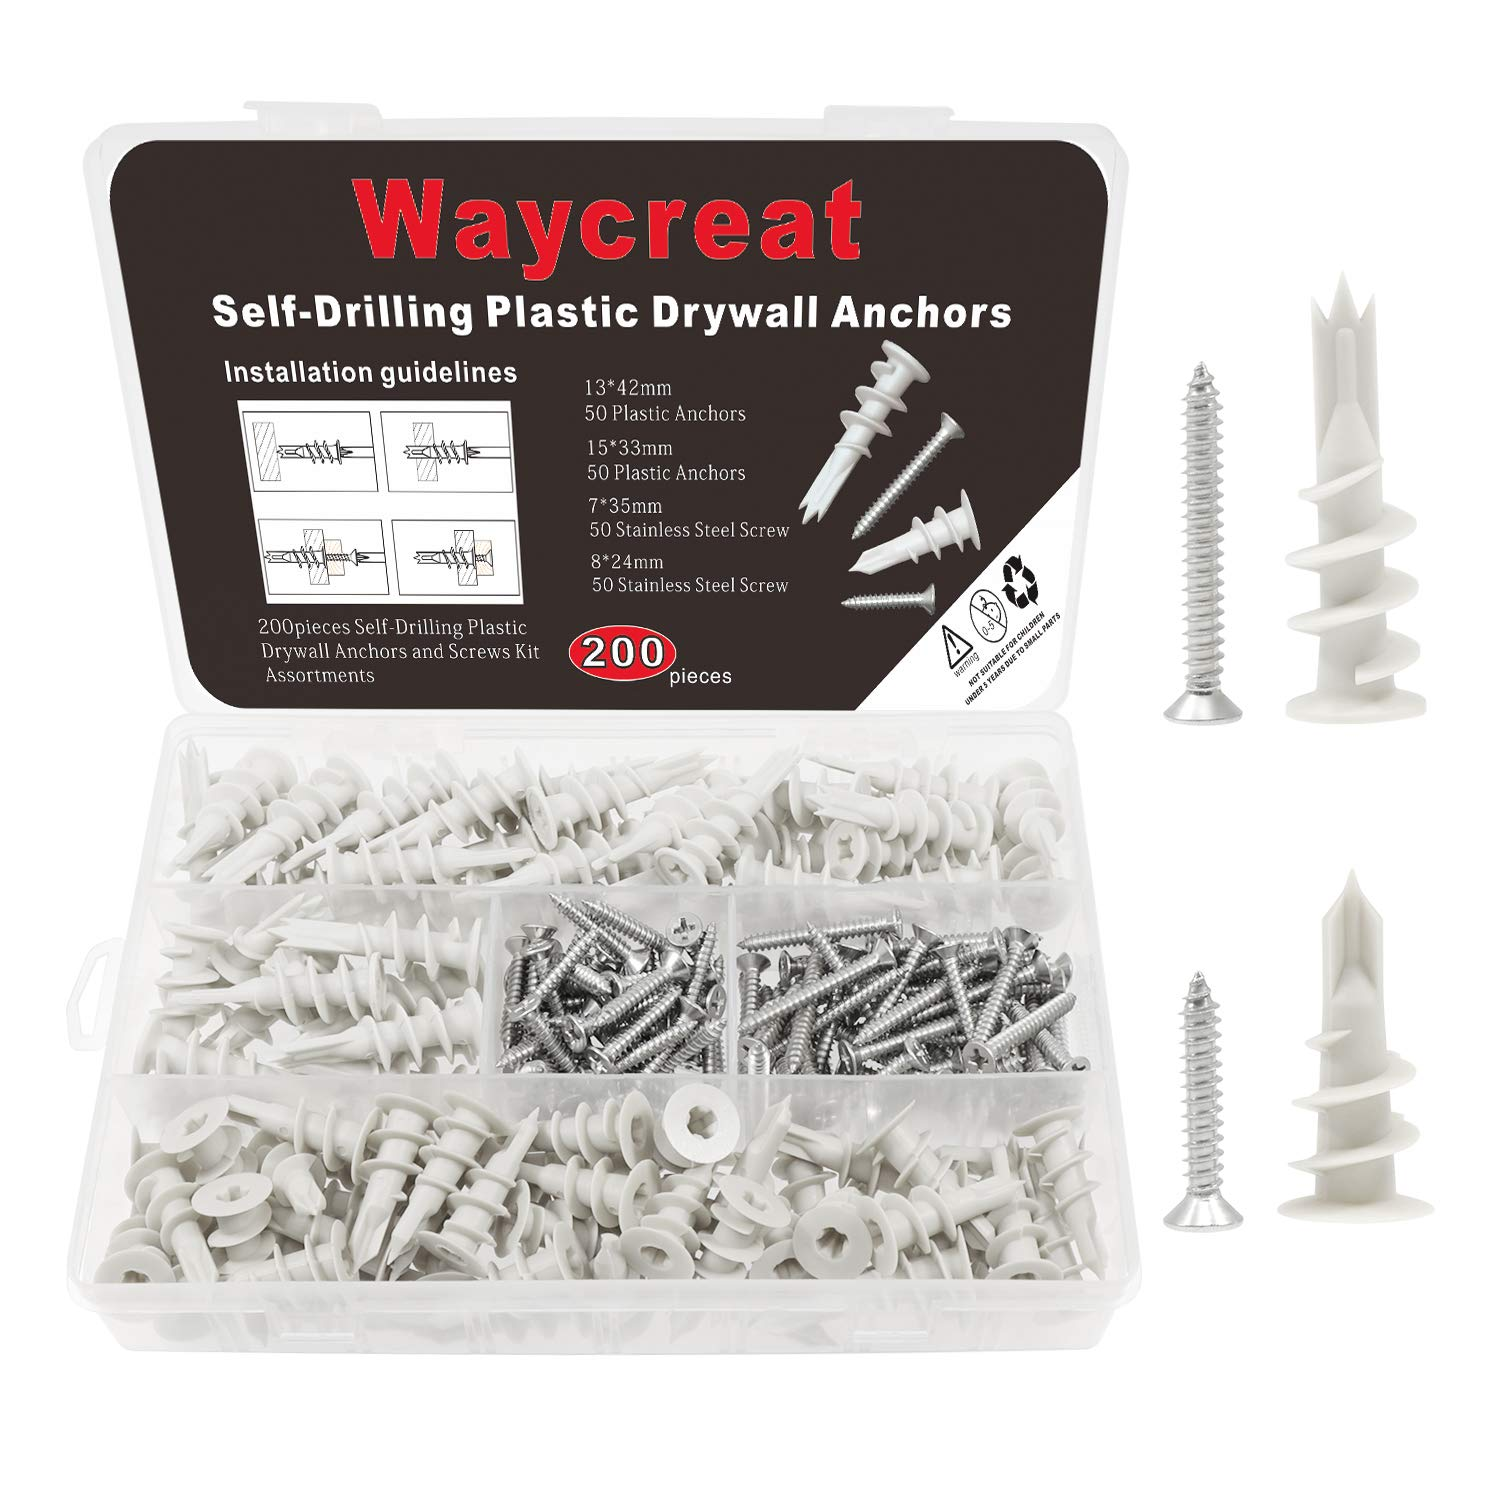 13x42mm + 15x33mm ISPINNER 140pcs Plastic Self Drilling Drywall Anchors with Screws Assortment Kit